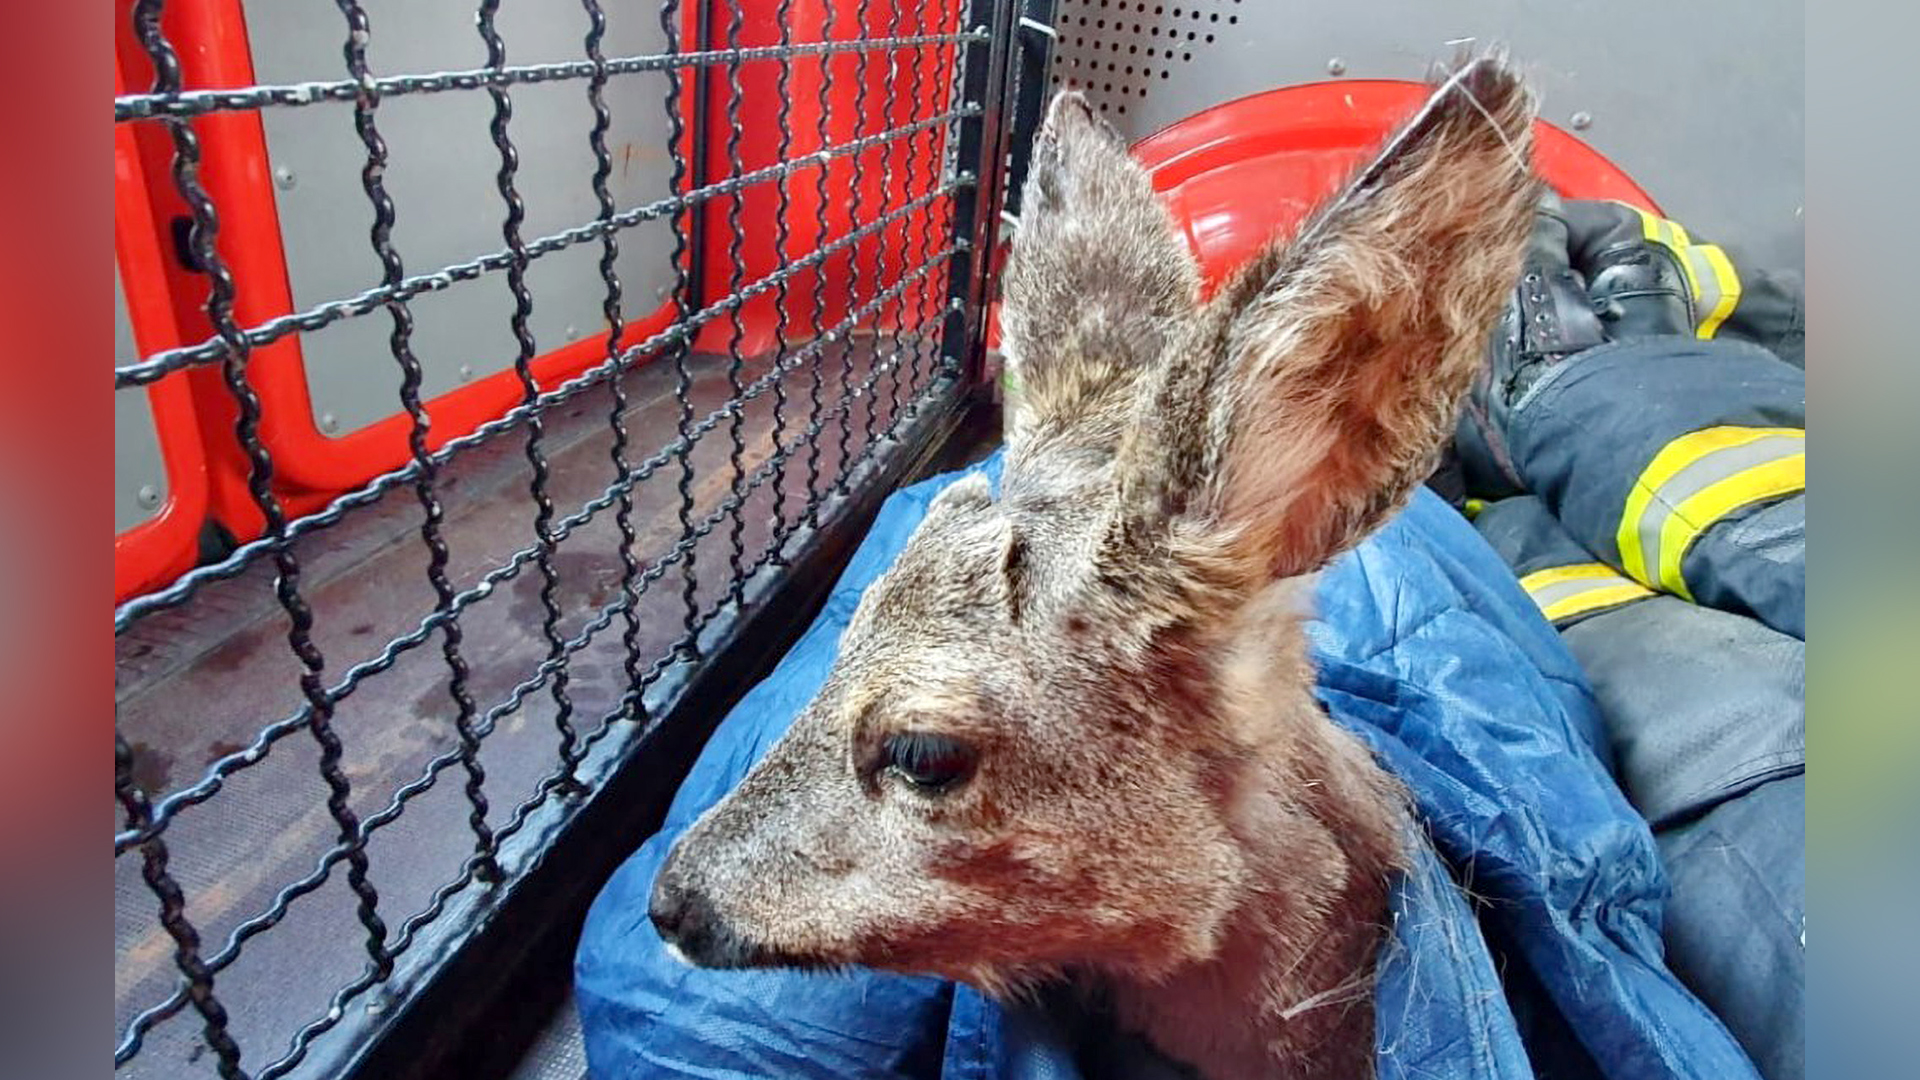 German Firefighters Rescue A Deer And Heron In Emergency Operations